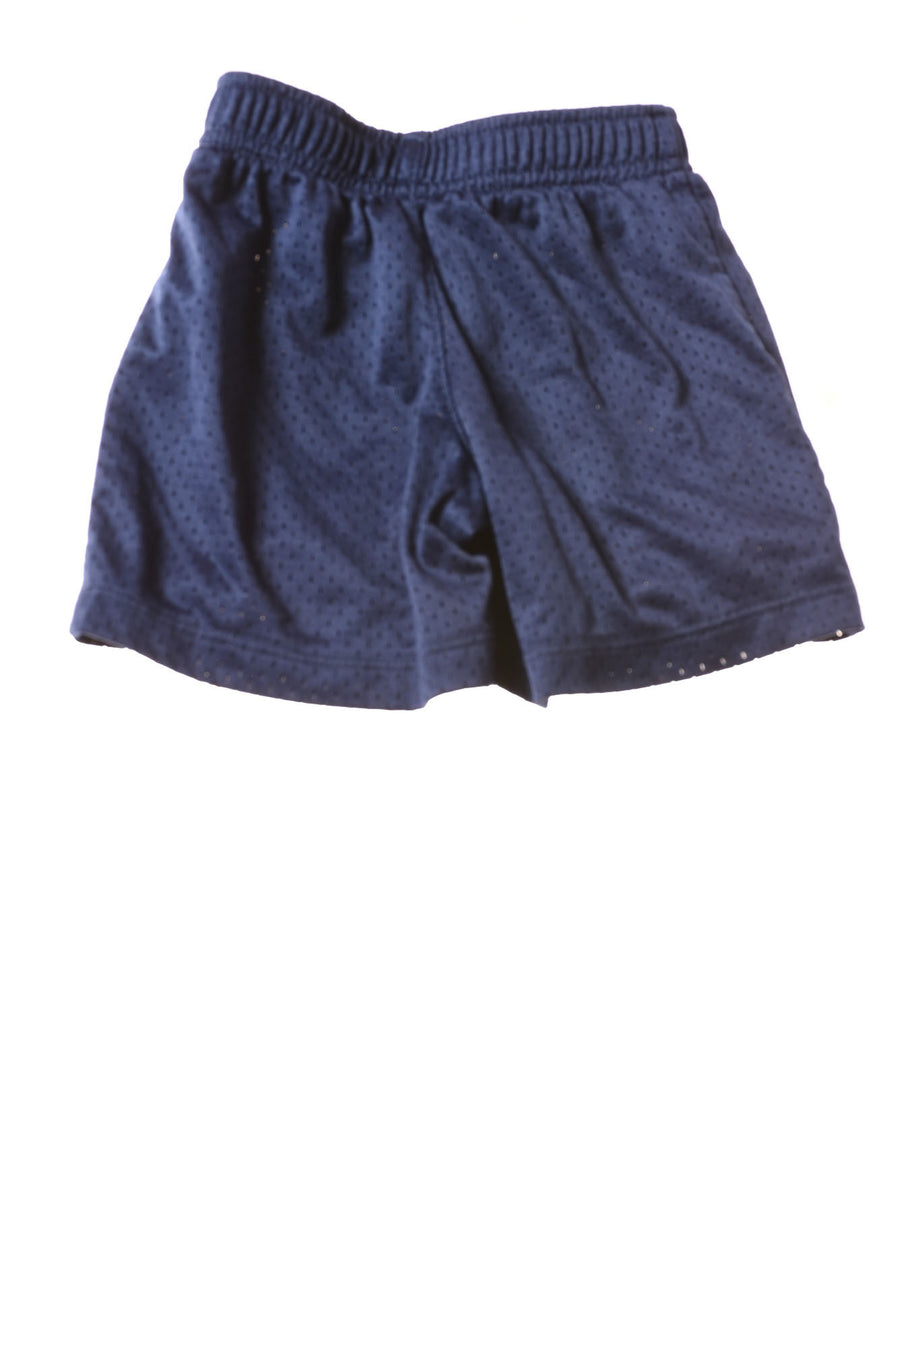 USED Nike Baby Boy's Shorts 24 Months Navy Blue